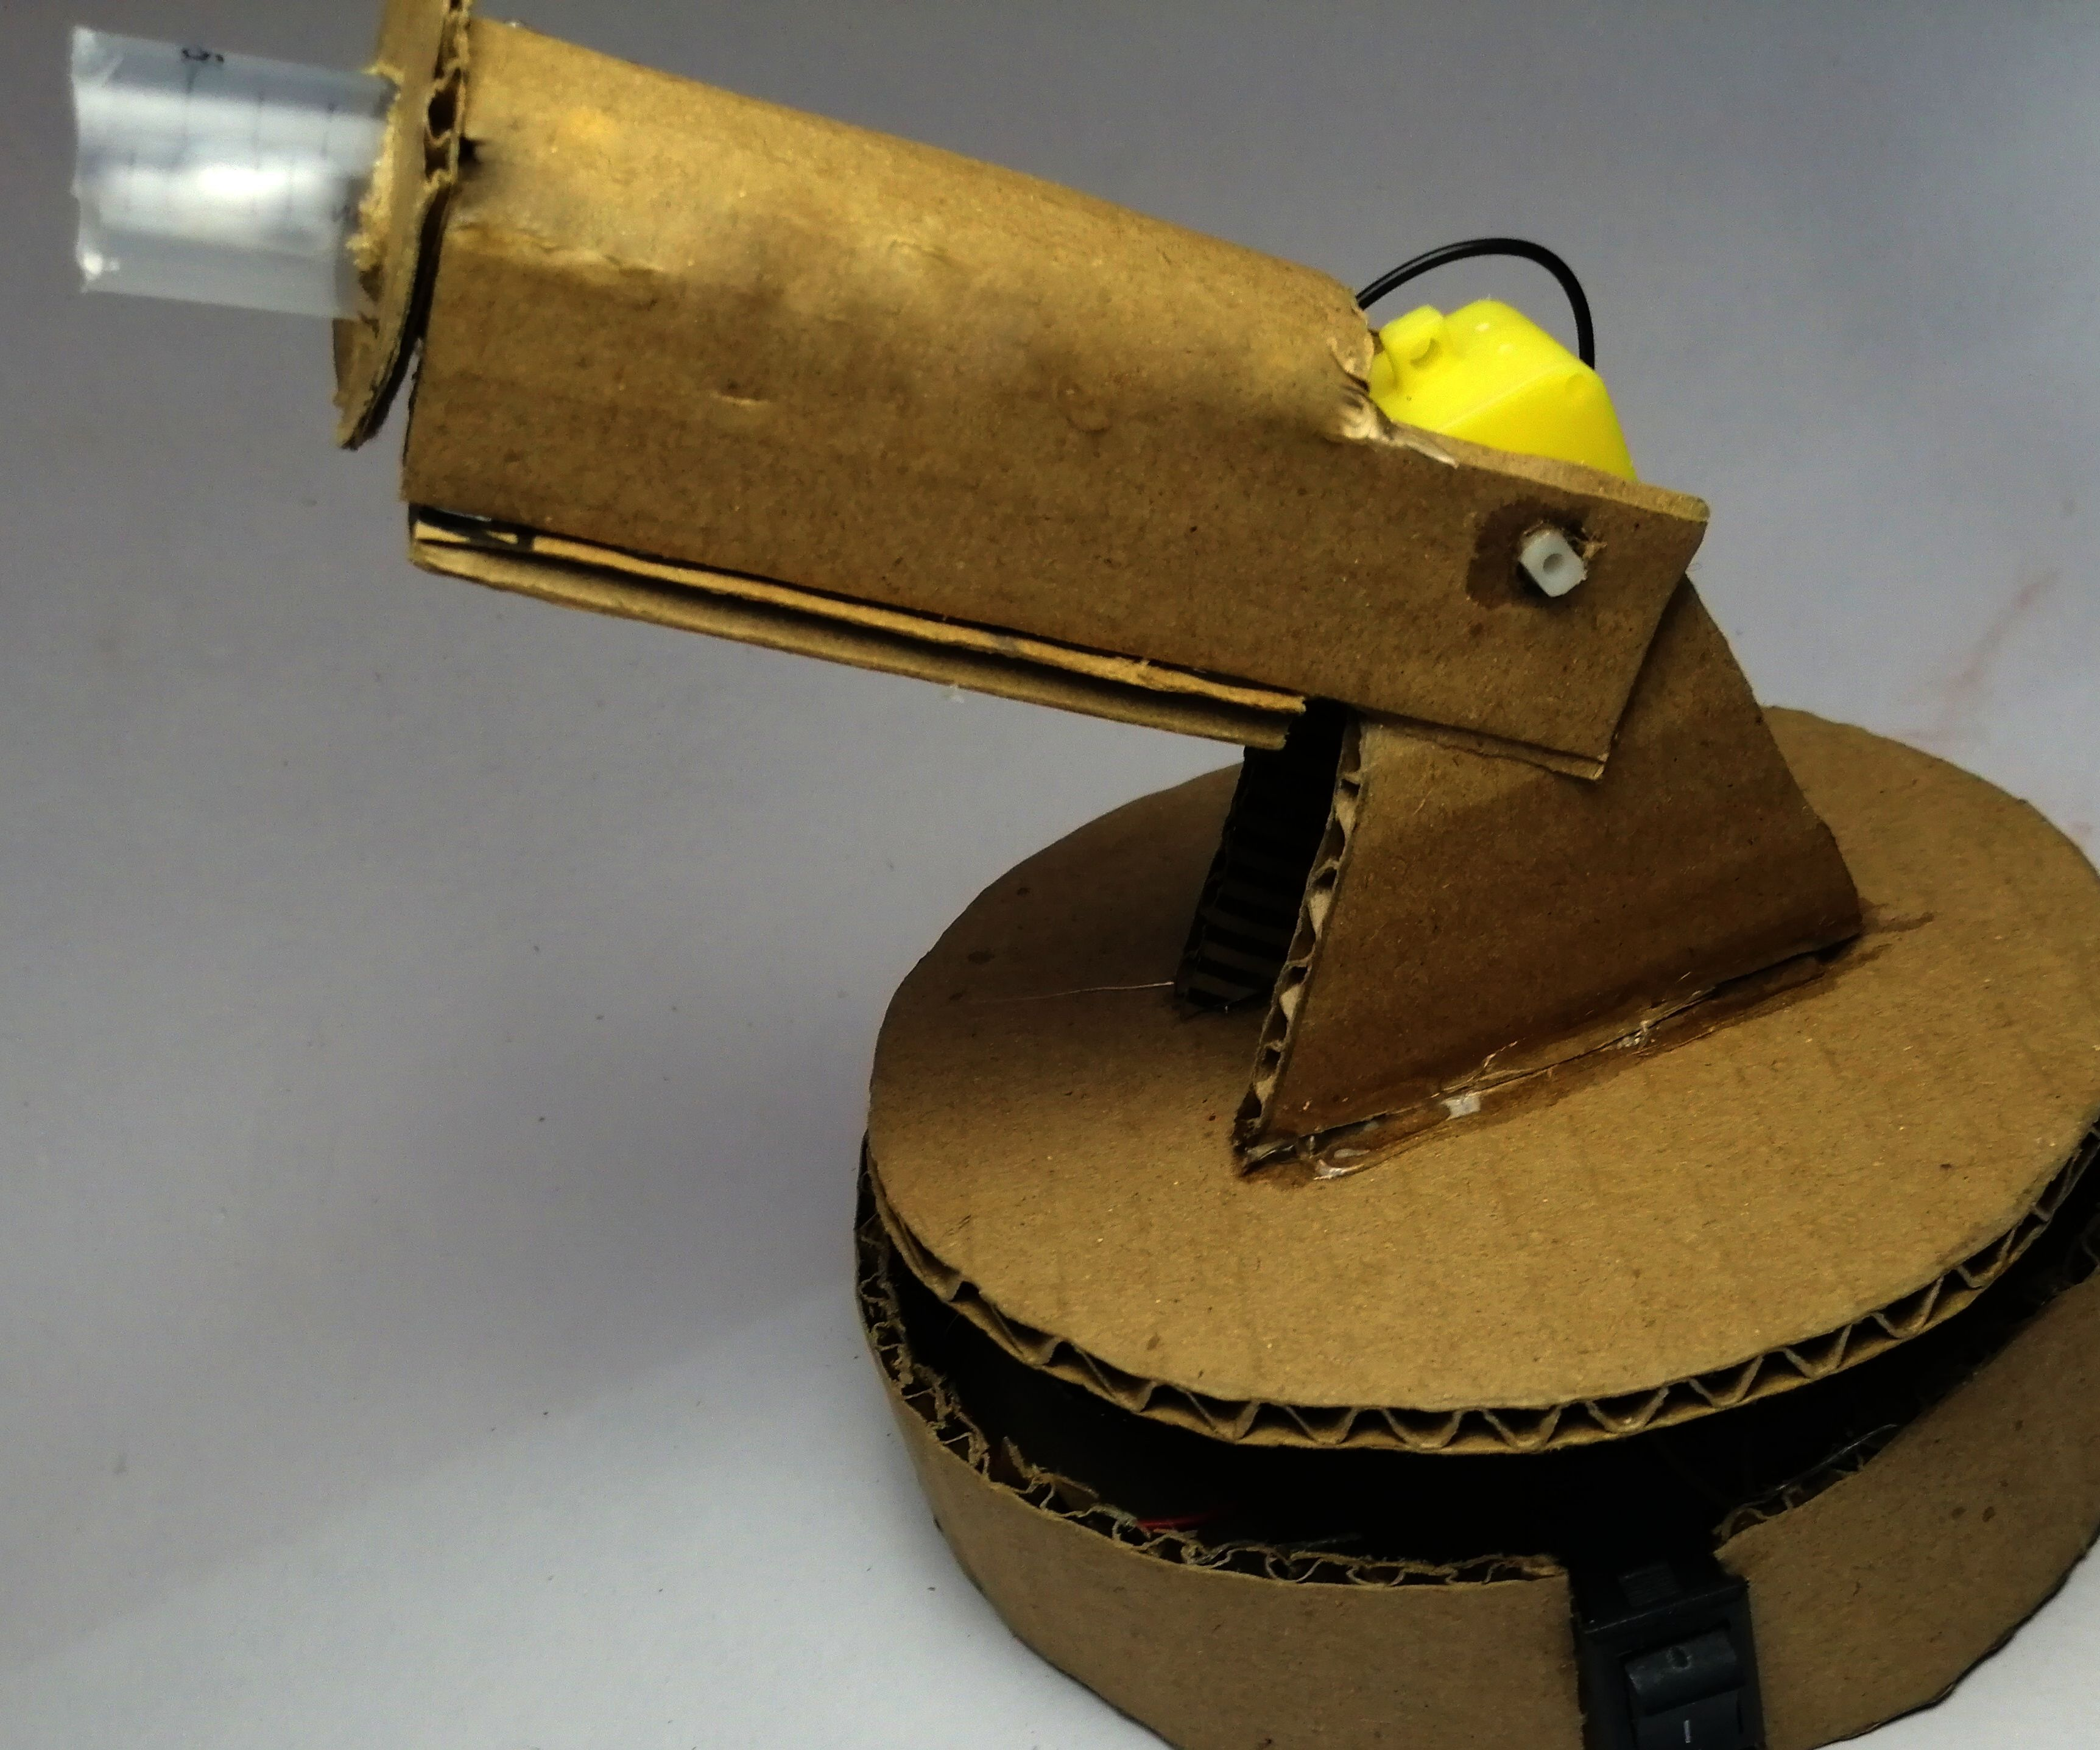 How to Make Wireless Robotic Arm With Airsoft Bullets